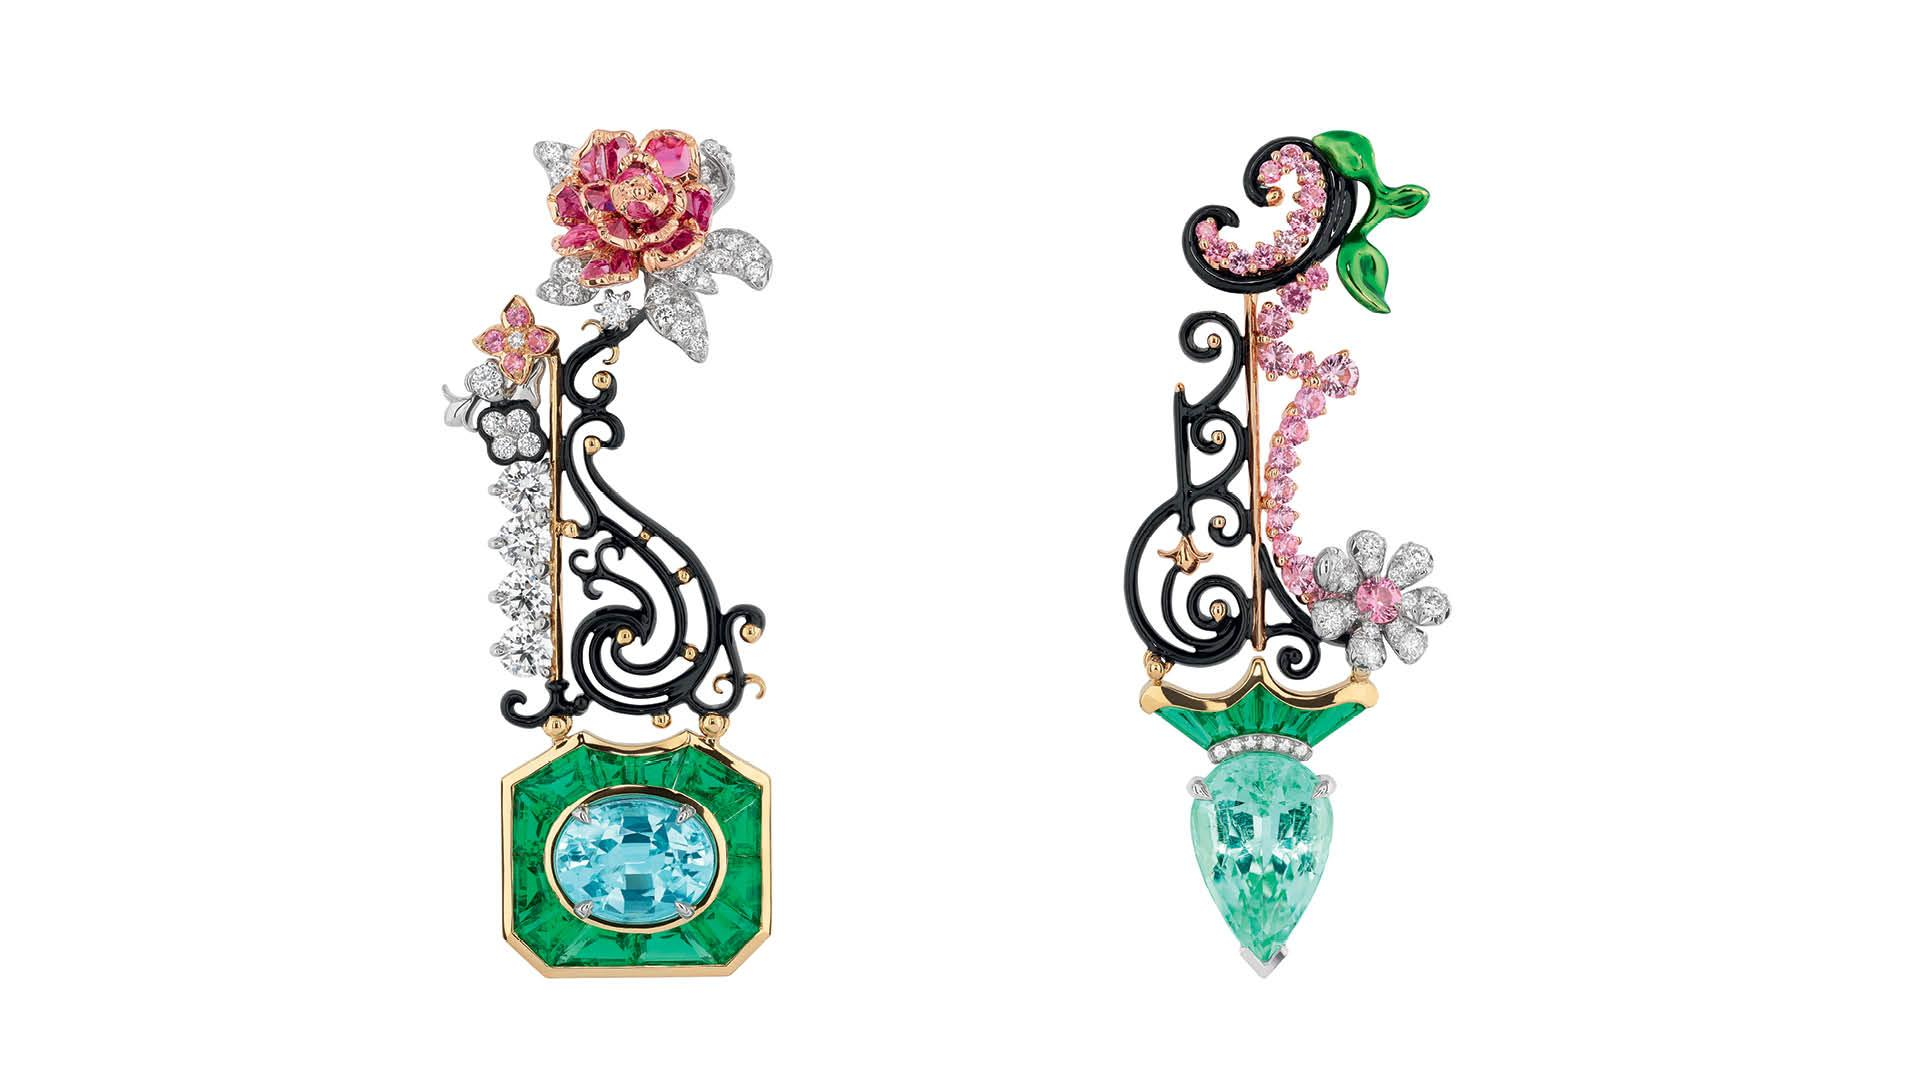 Dior Lacquer and Tourmaline Earrings